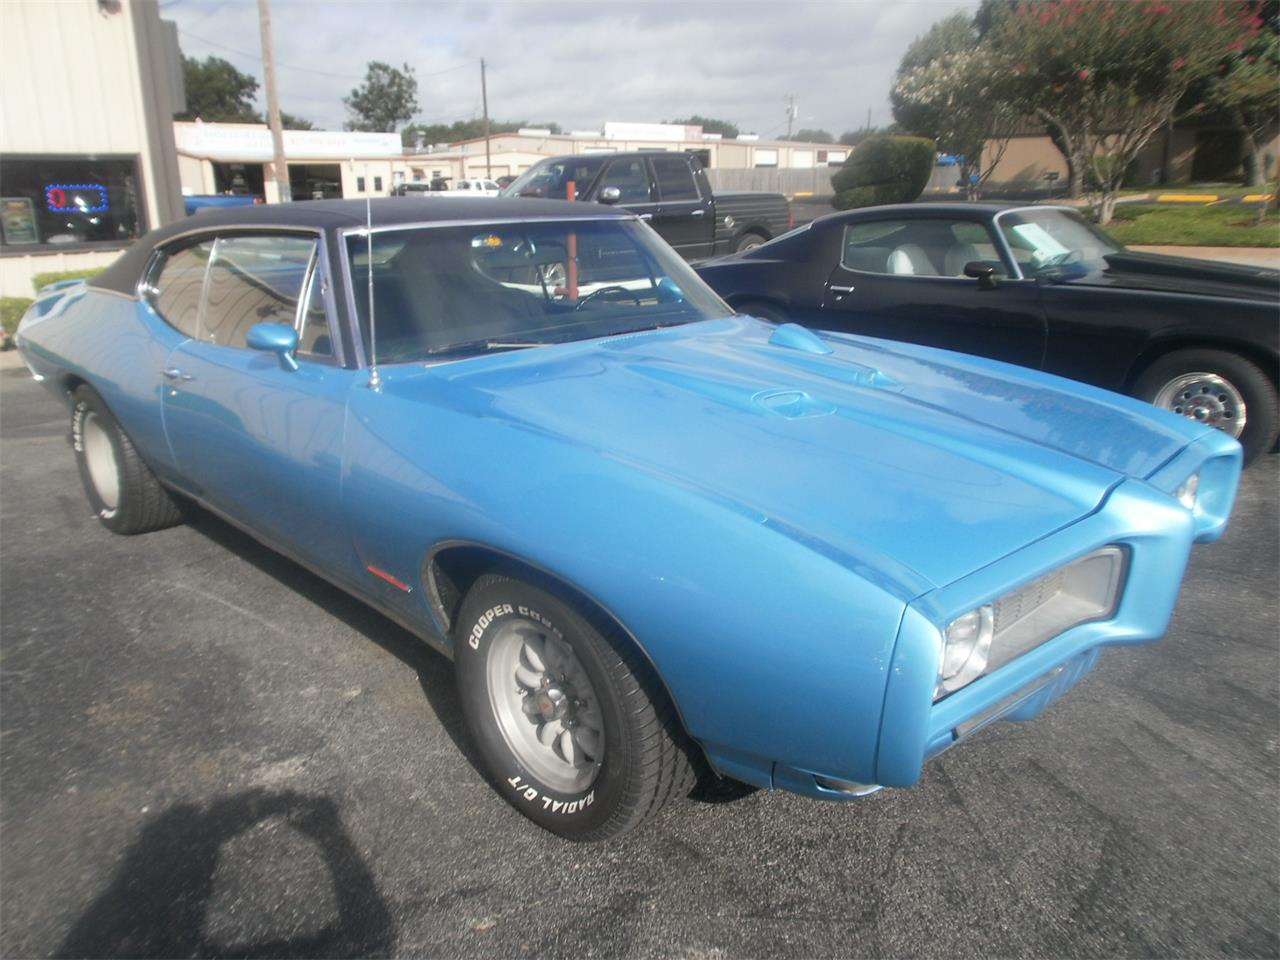 For Sale: 1968 Pontiac GTO in Cleburne, Texas